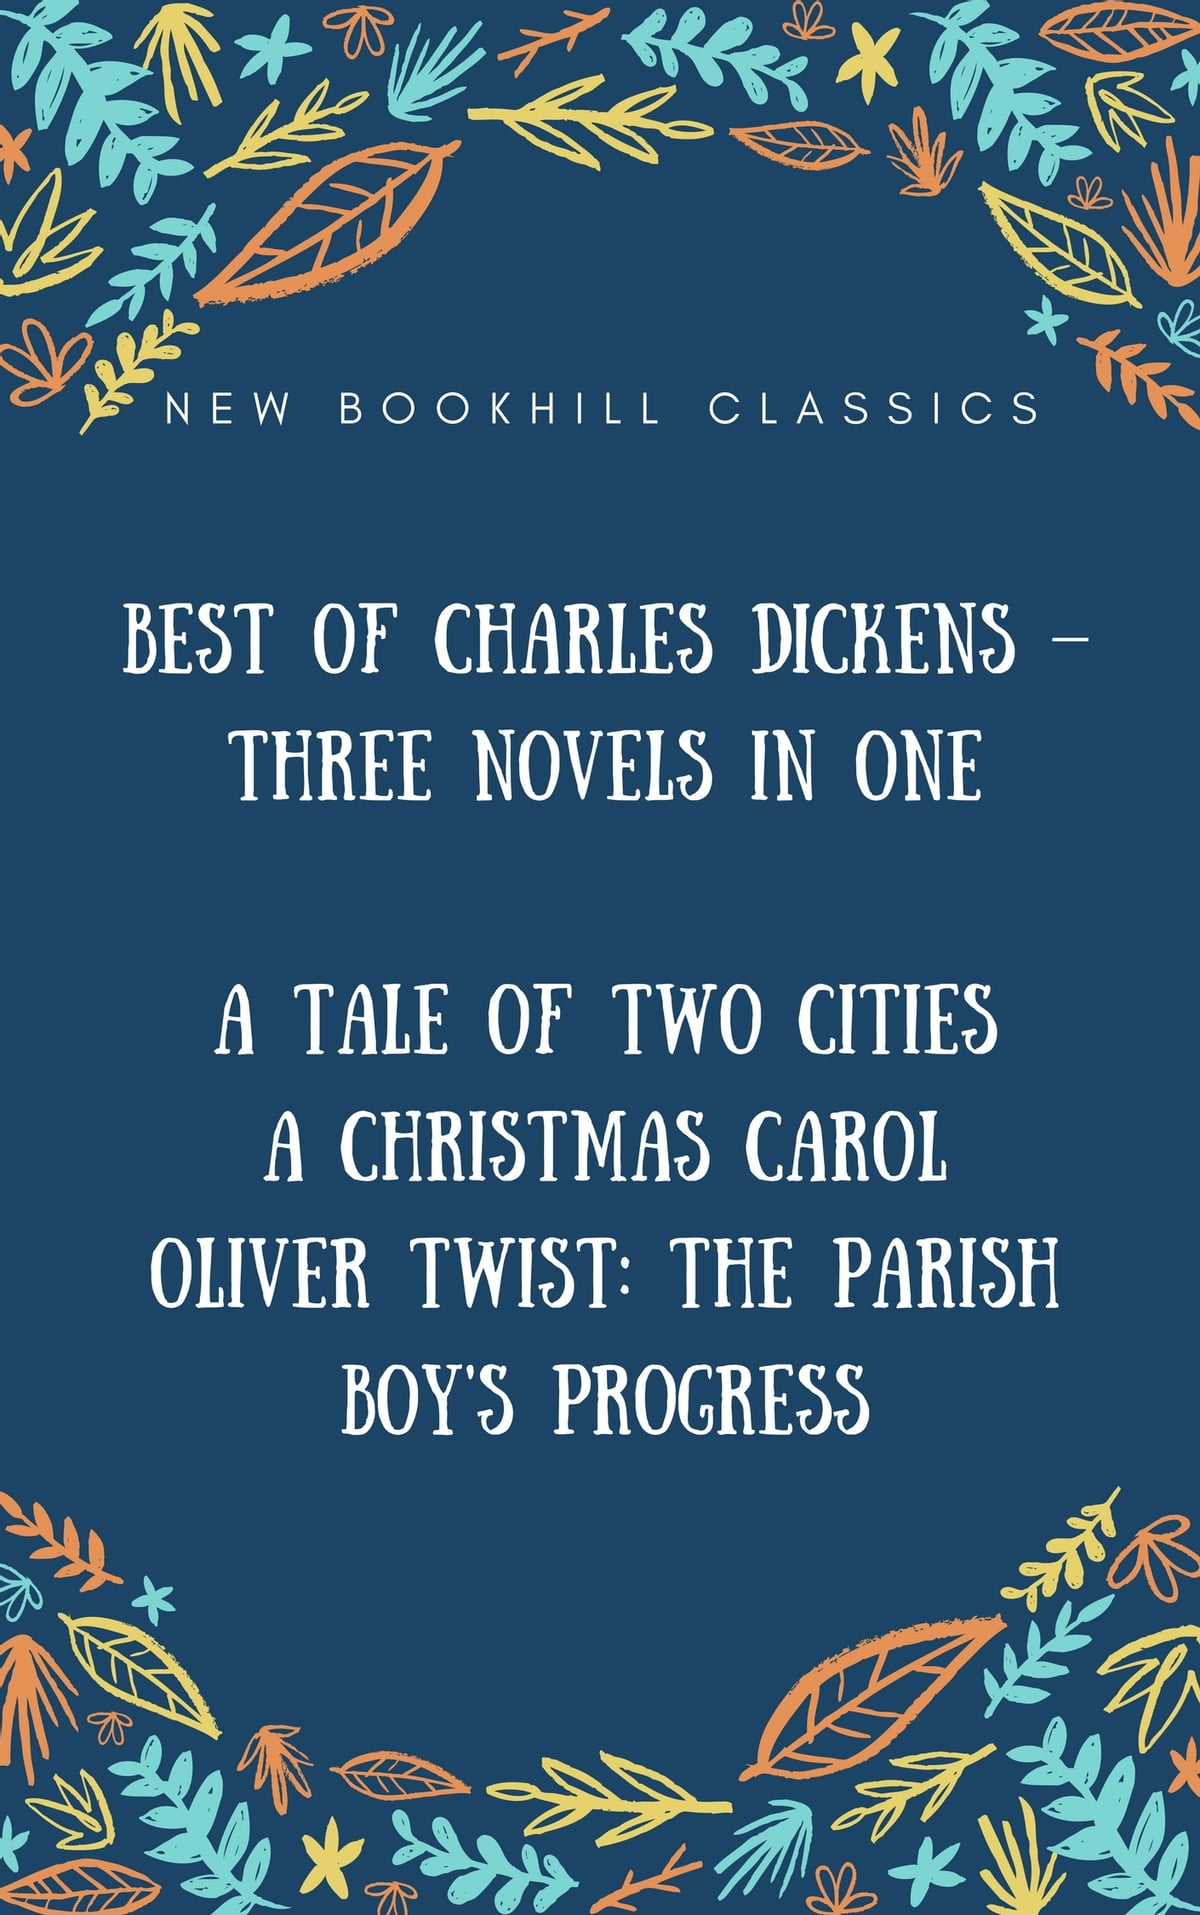 best of charles dickens three novels in one annotated a tale of two cities a christmas carol and oliver twist the parish boys progress ebook by - Best Christmas Novels